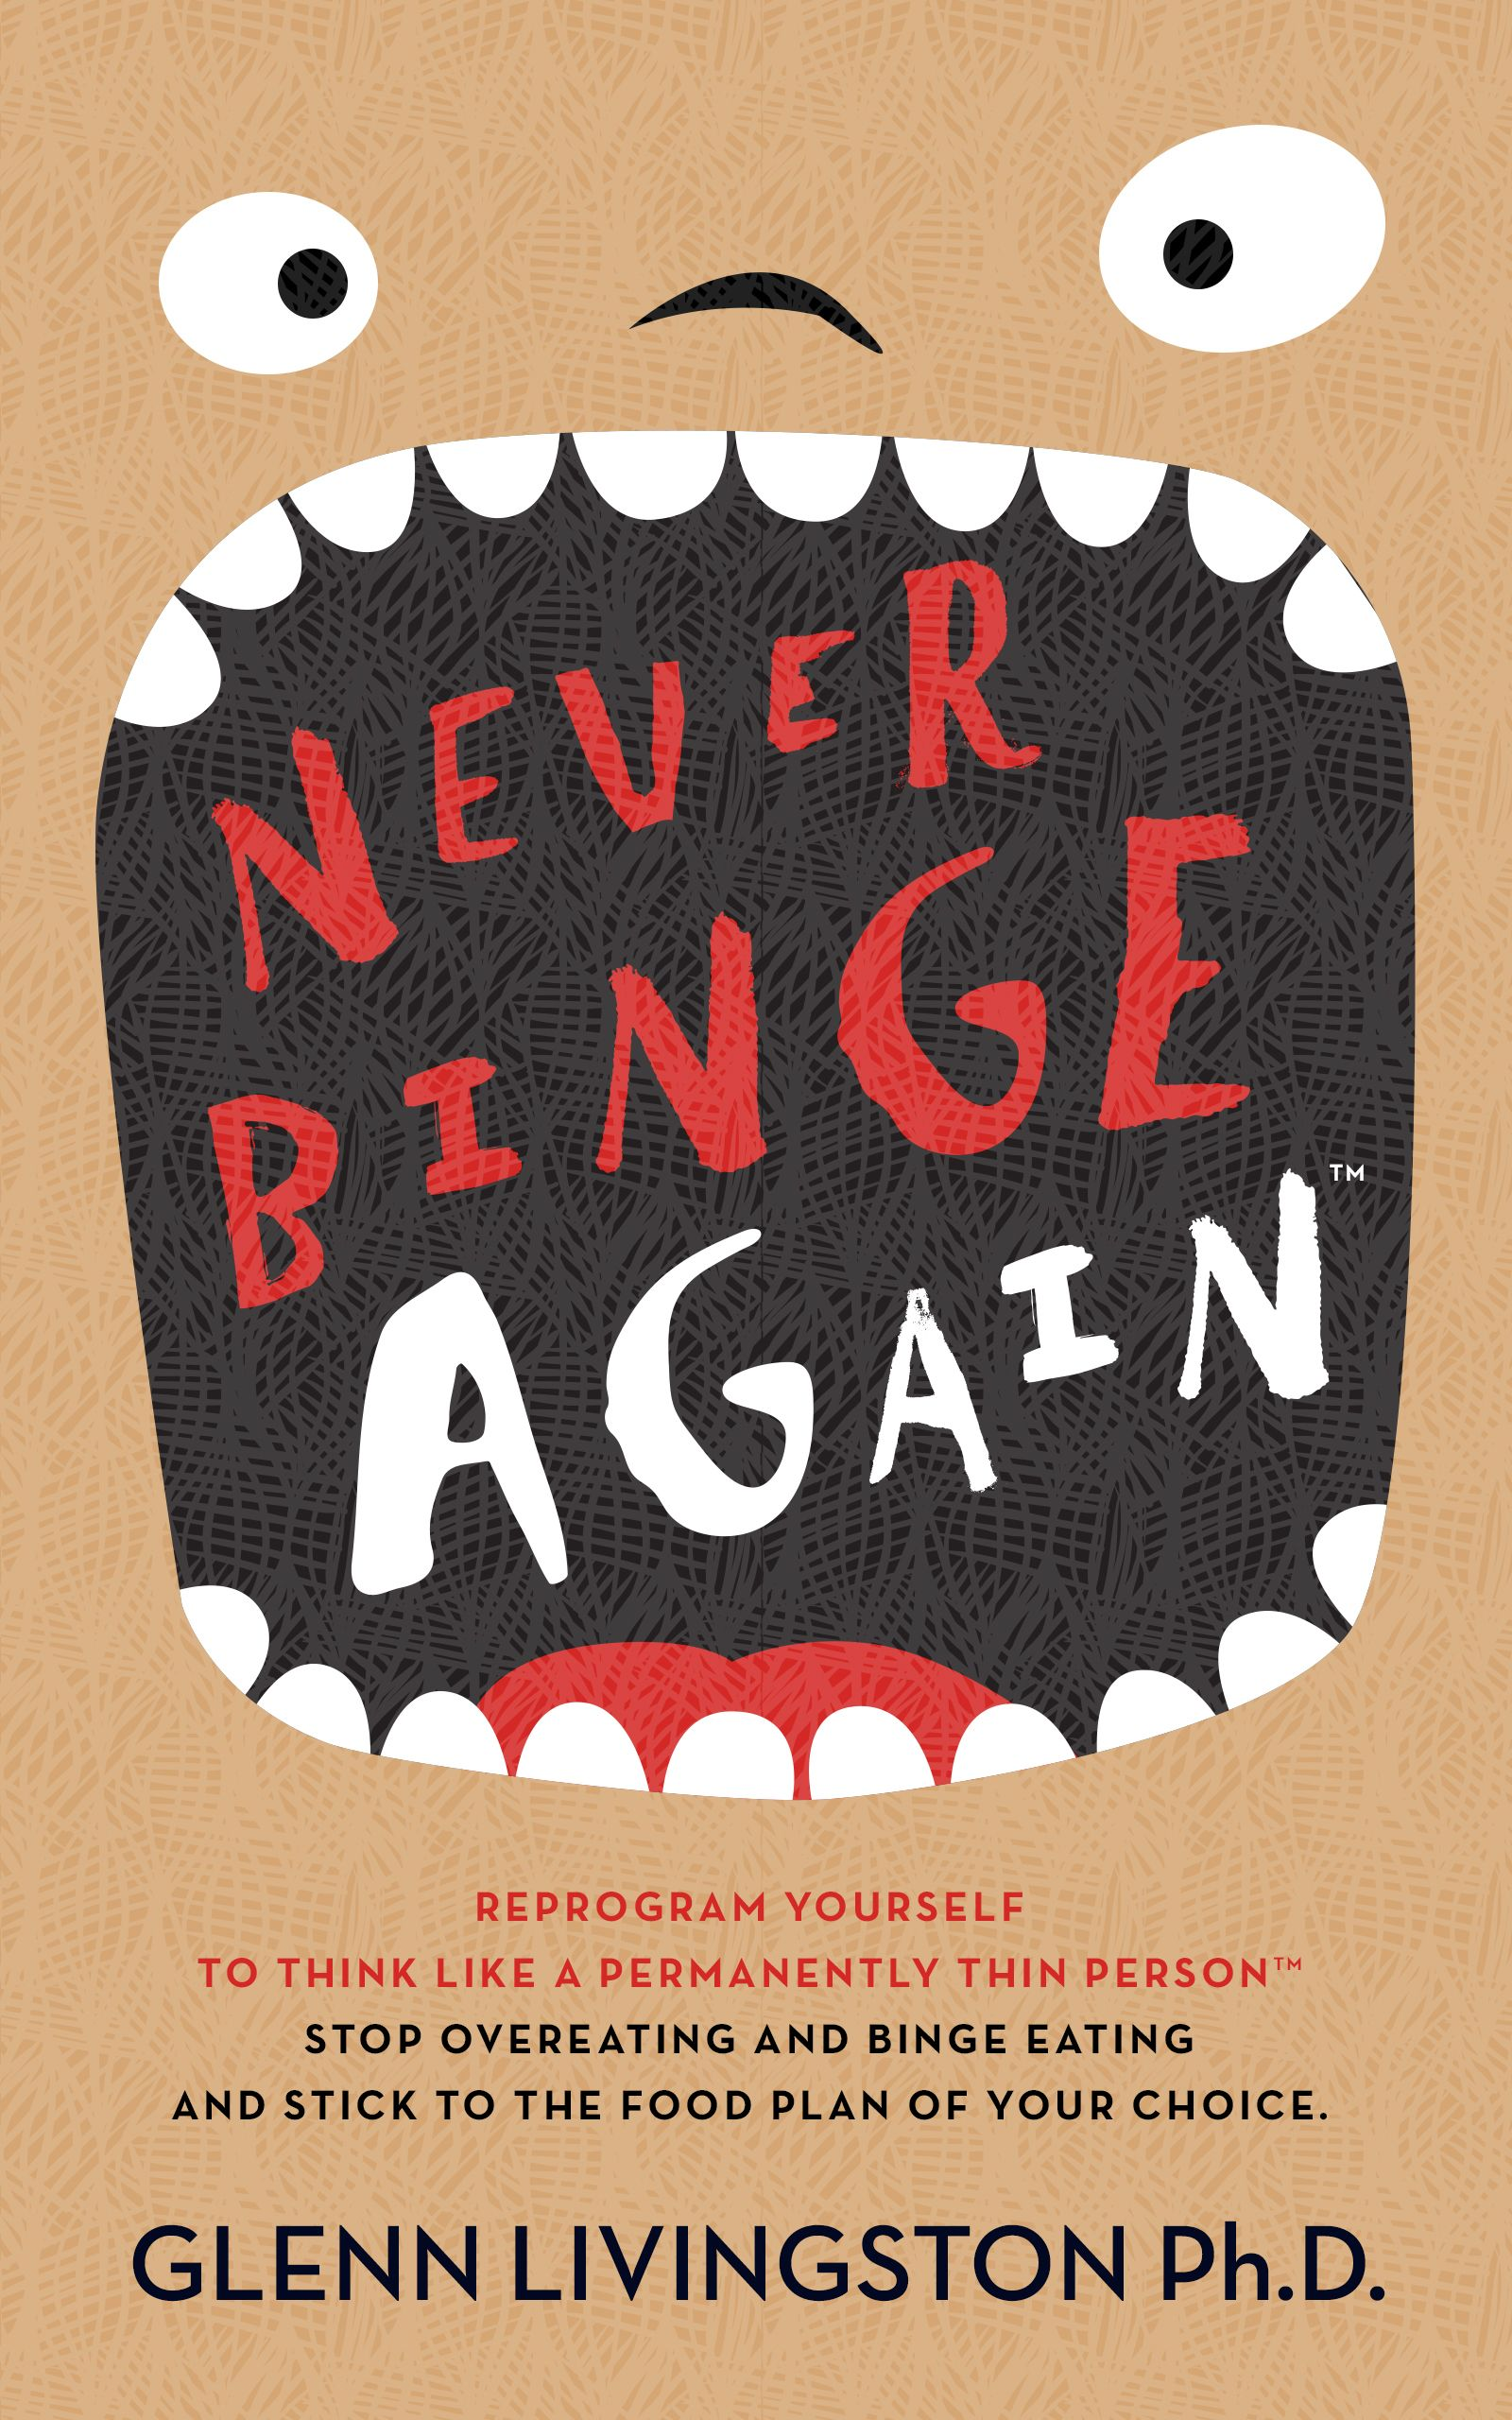 Book cover design for never binge again if you would like to book cover design for never binge again if you would like to commission us for solutioingenieria